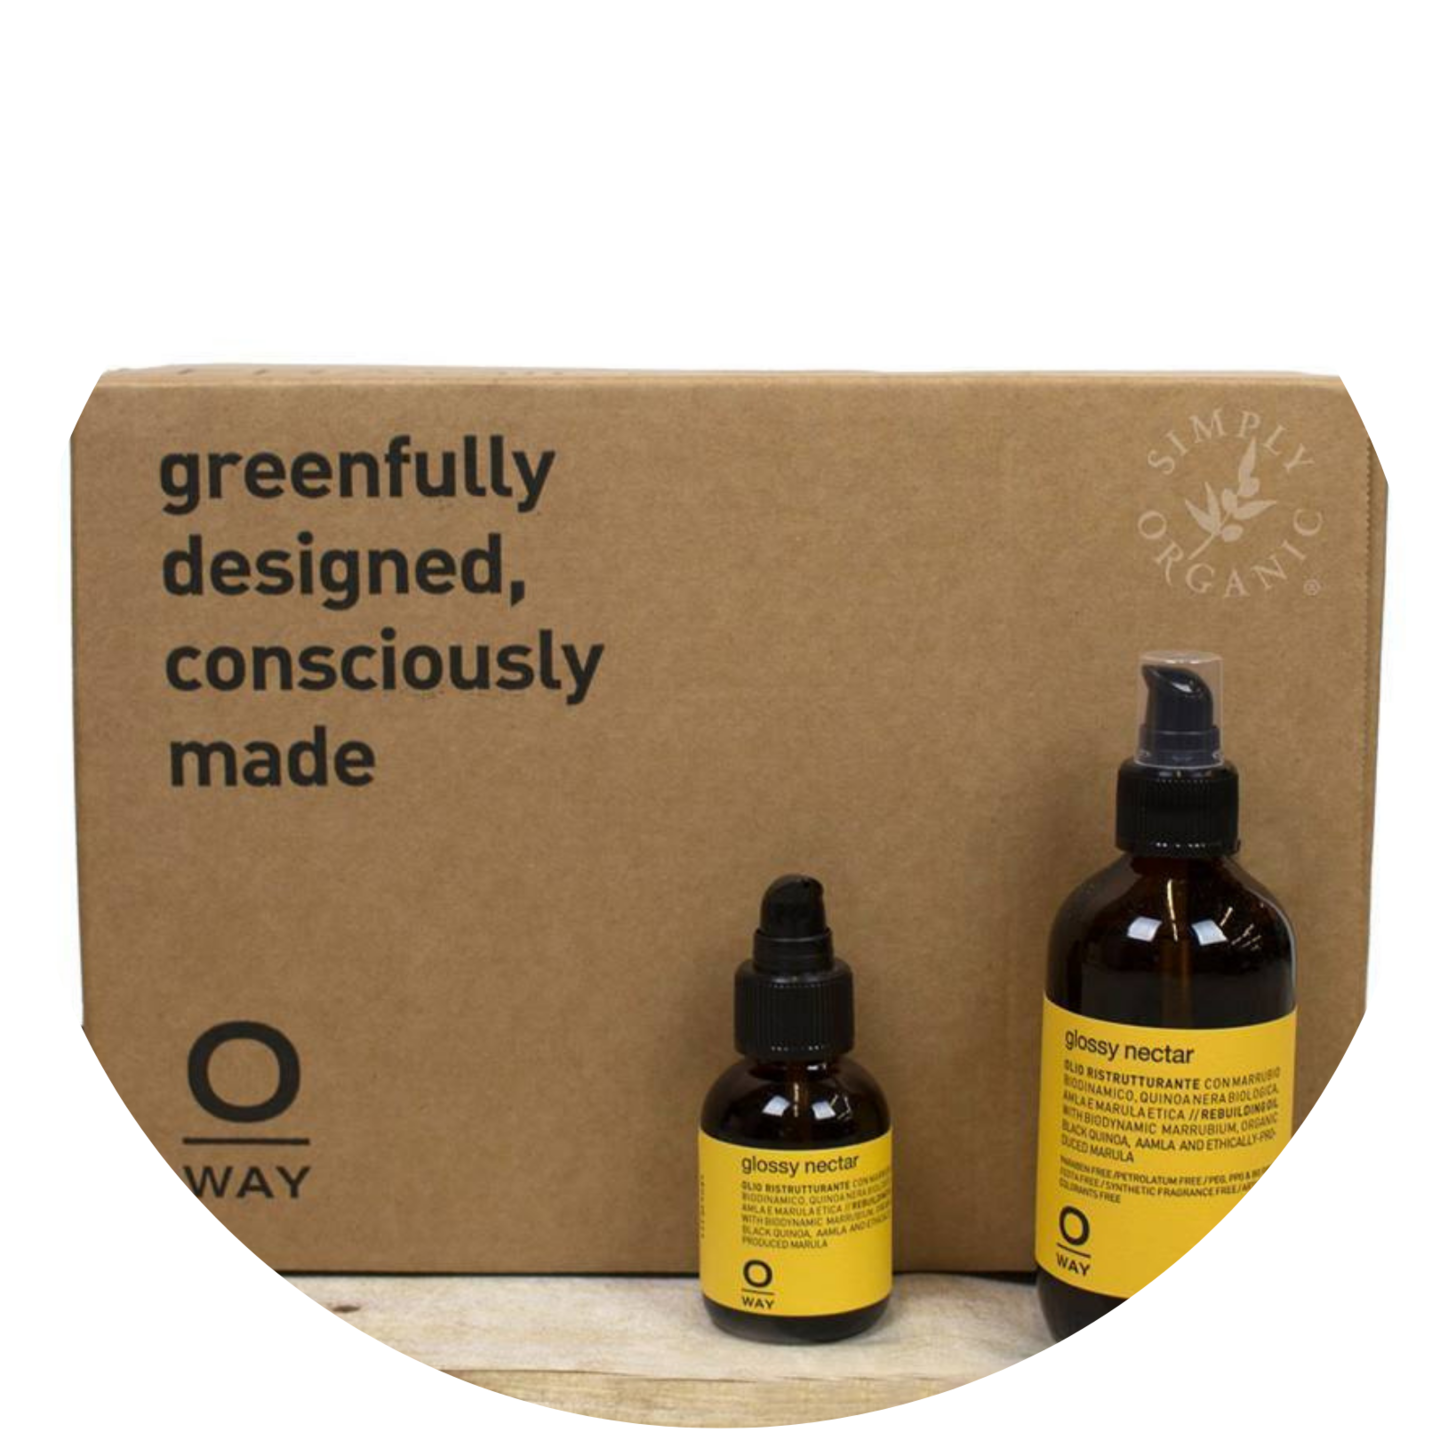 Oway, Organic Hair products, Non-toxic hair products